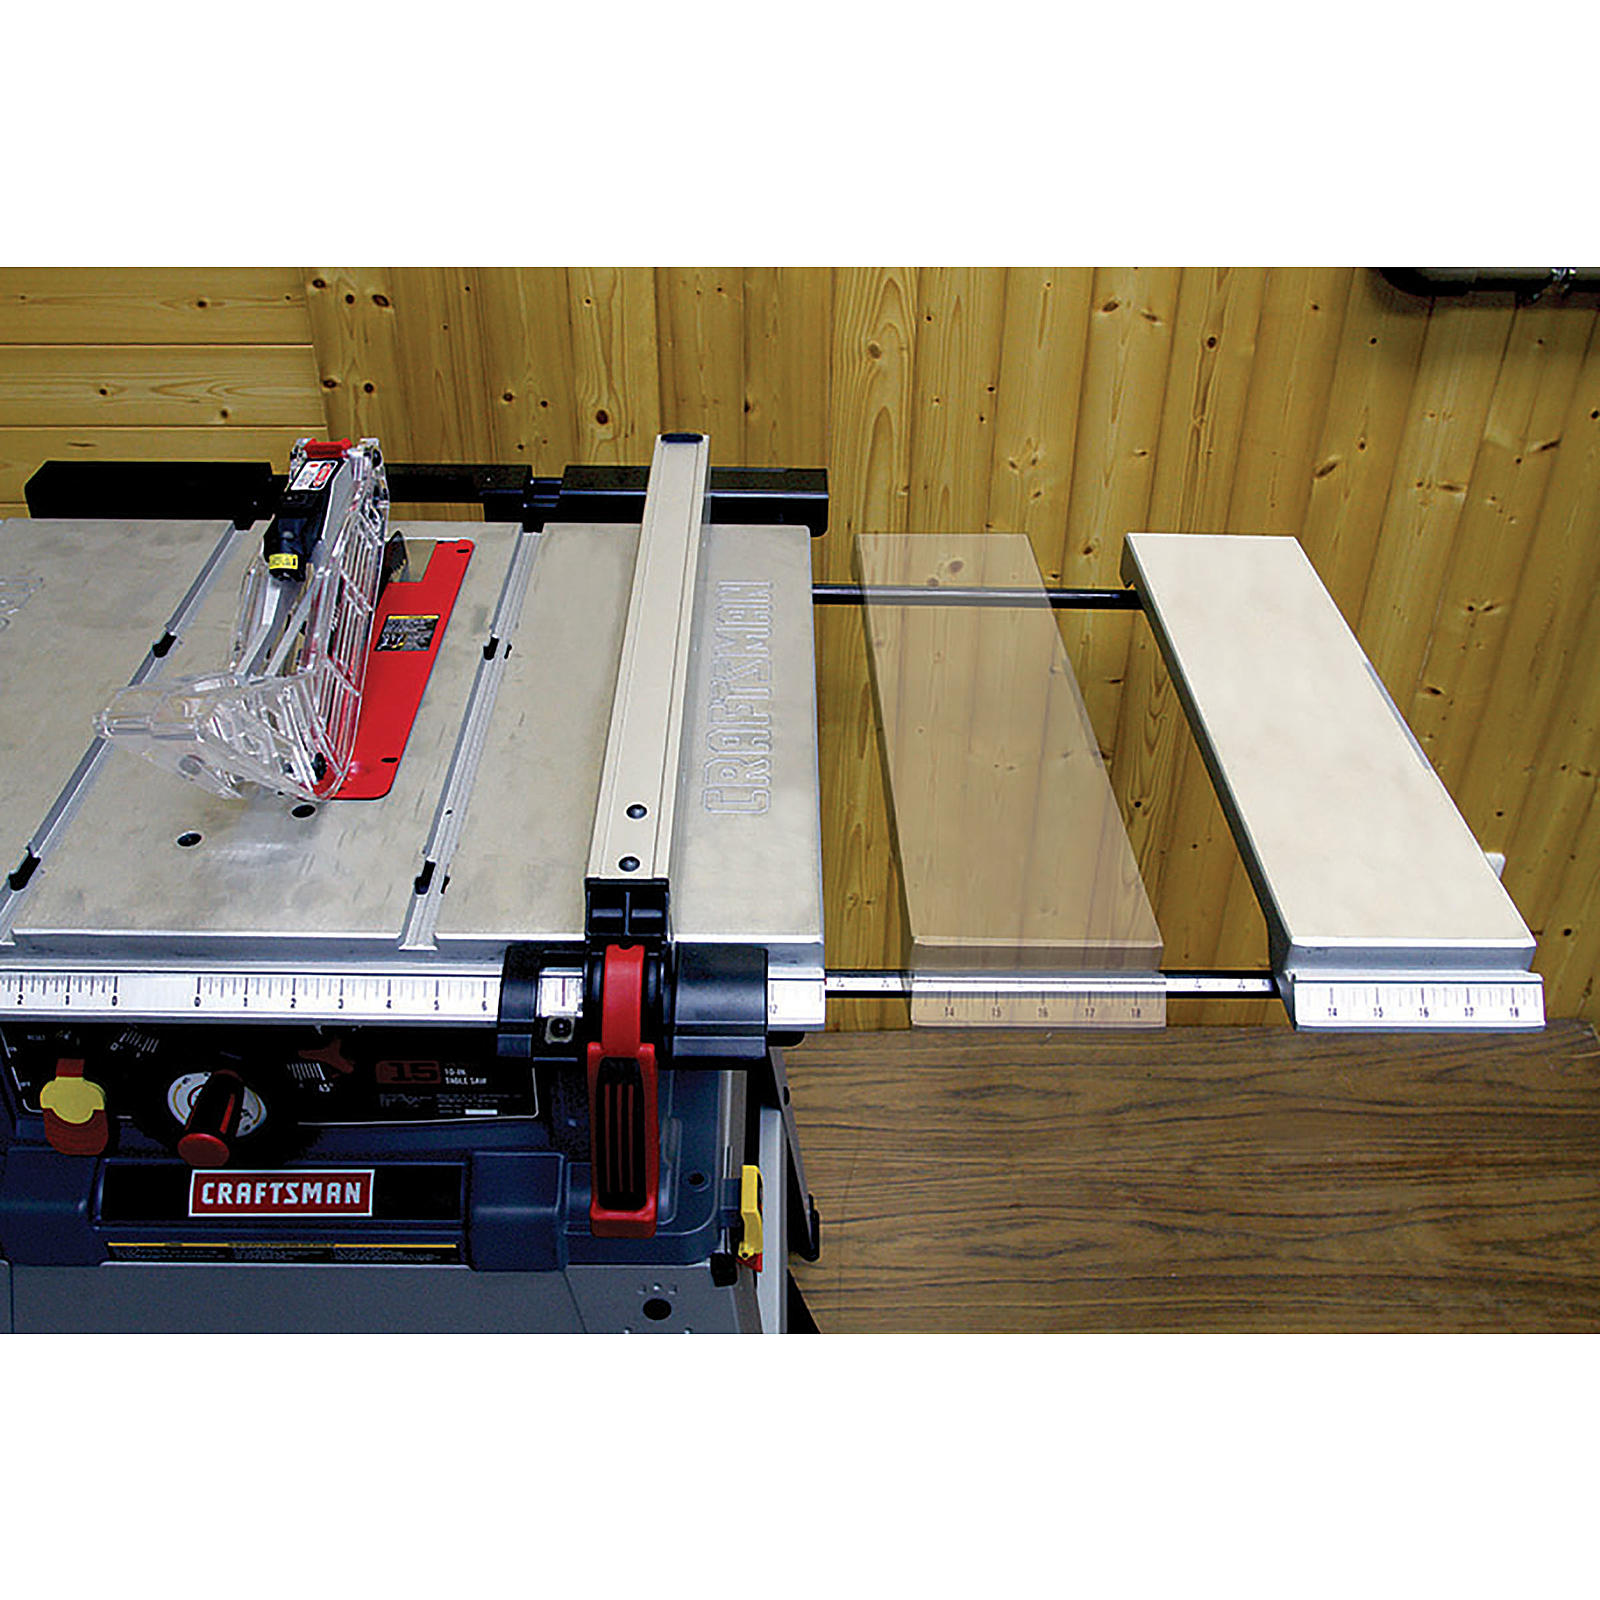 Craftsman 21807 portable table saw review table saw central Table saw fence reviews